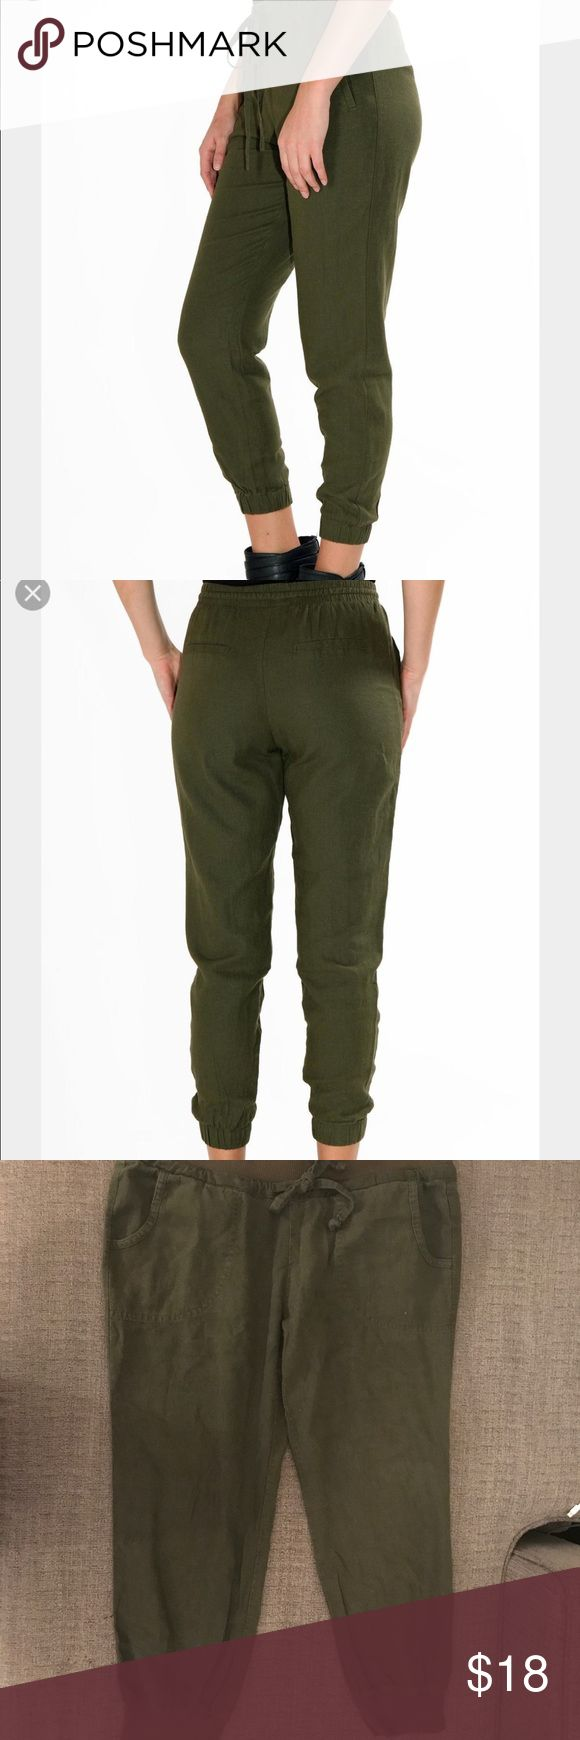 plain army green joggers outfit girls